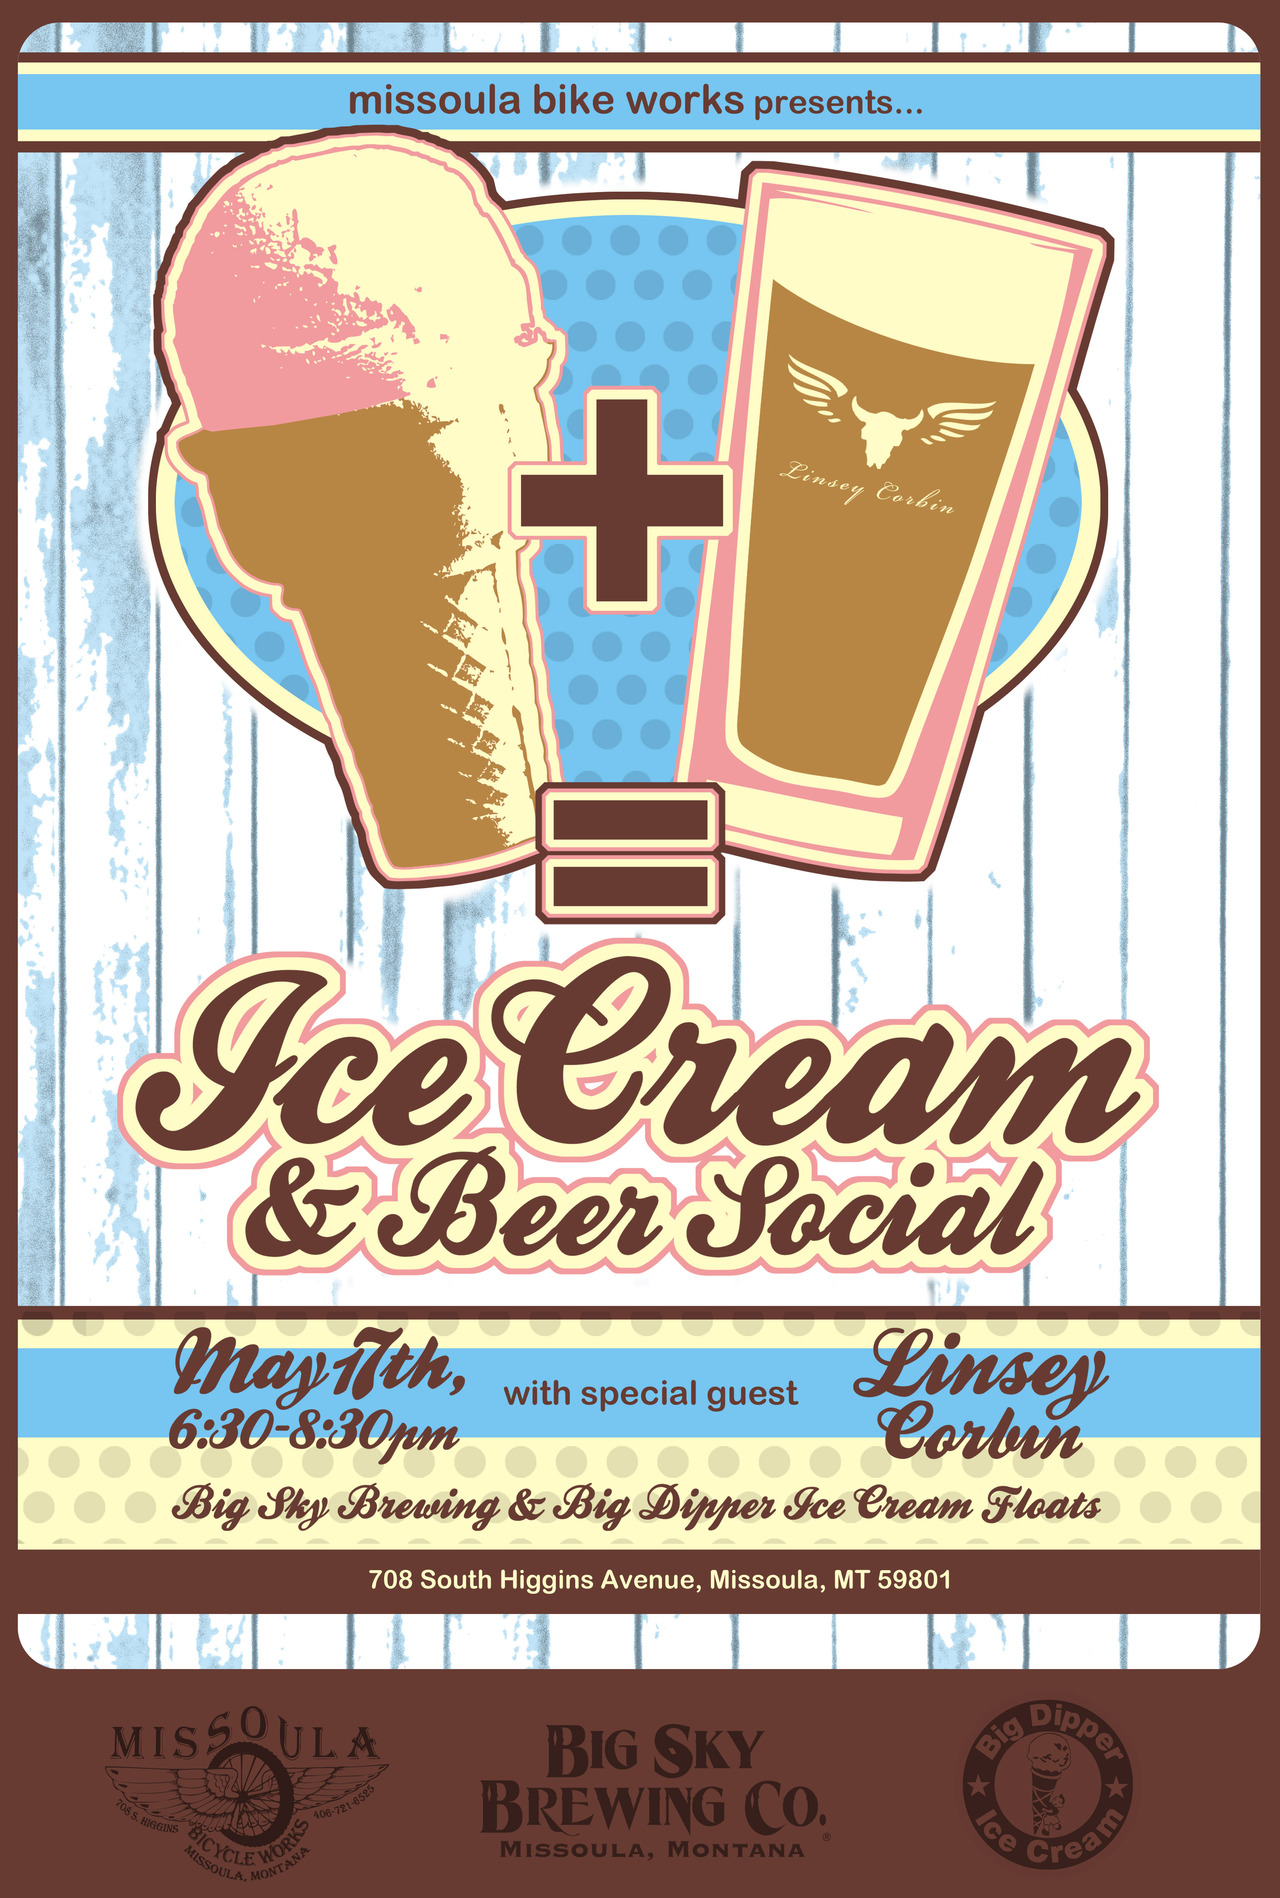 5/14/12    When you combine   Big Sky Brewing Company Beer   with   Big Dipper Ice Cream   at   Missoula Bike Works   and invite   Linsey Corbin  , fun things happen.  I hope to see you all there.